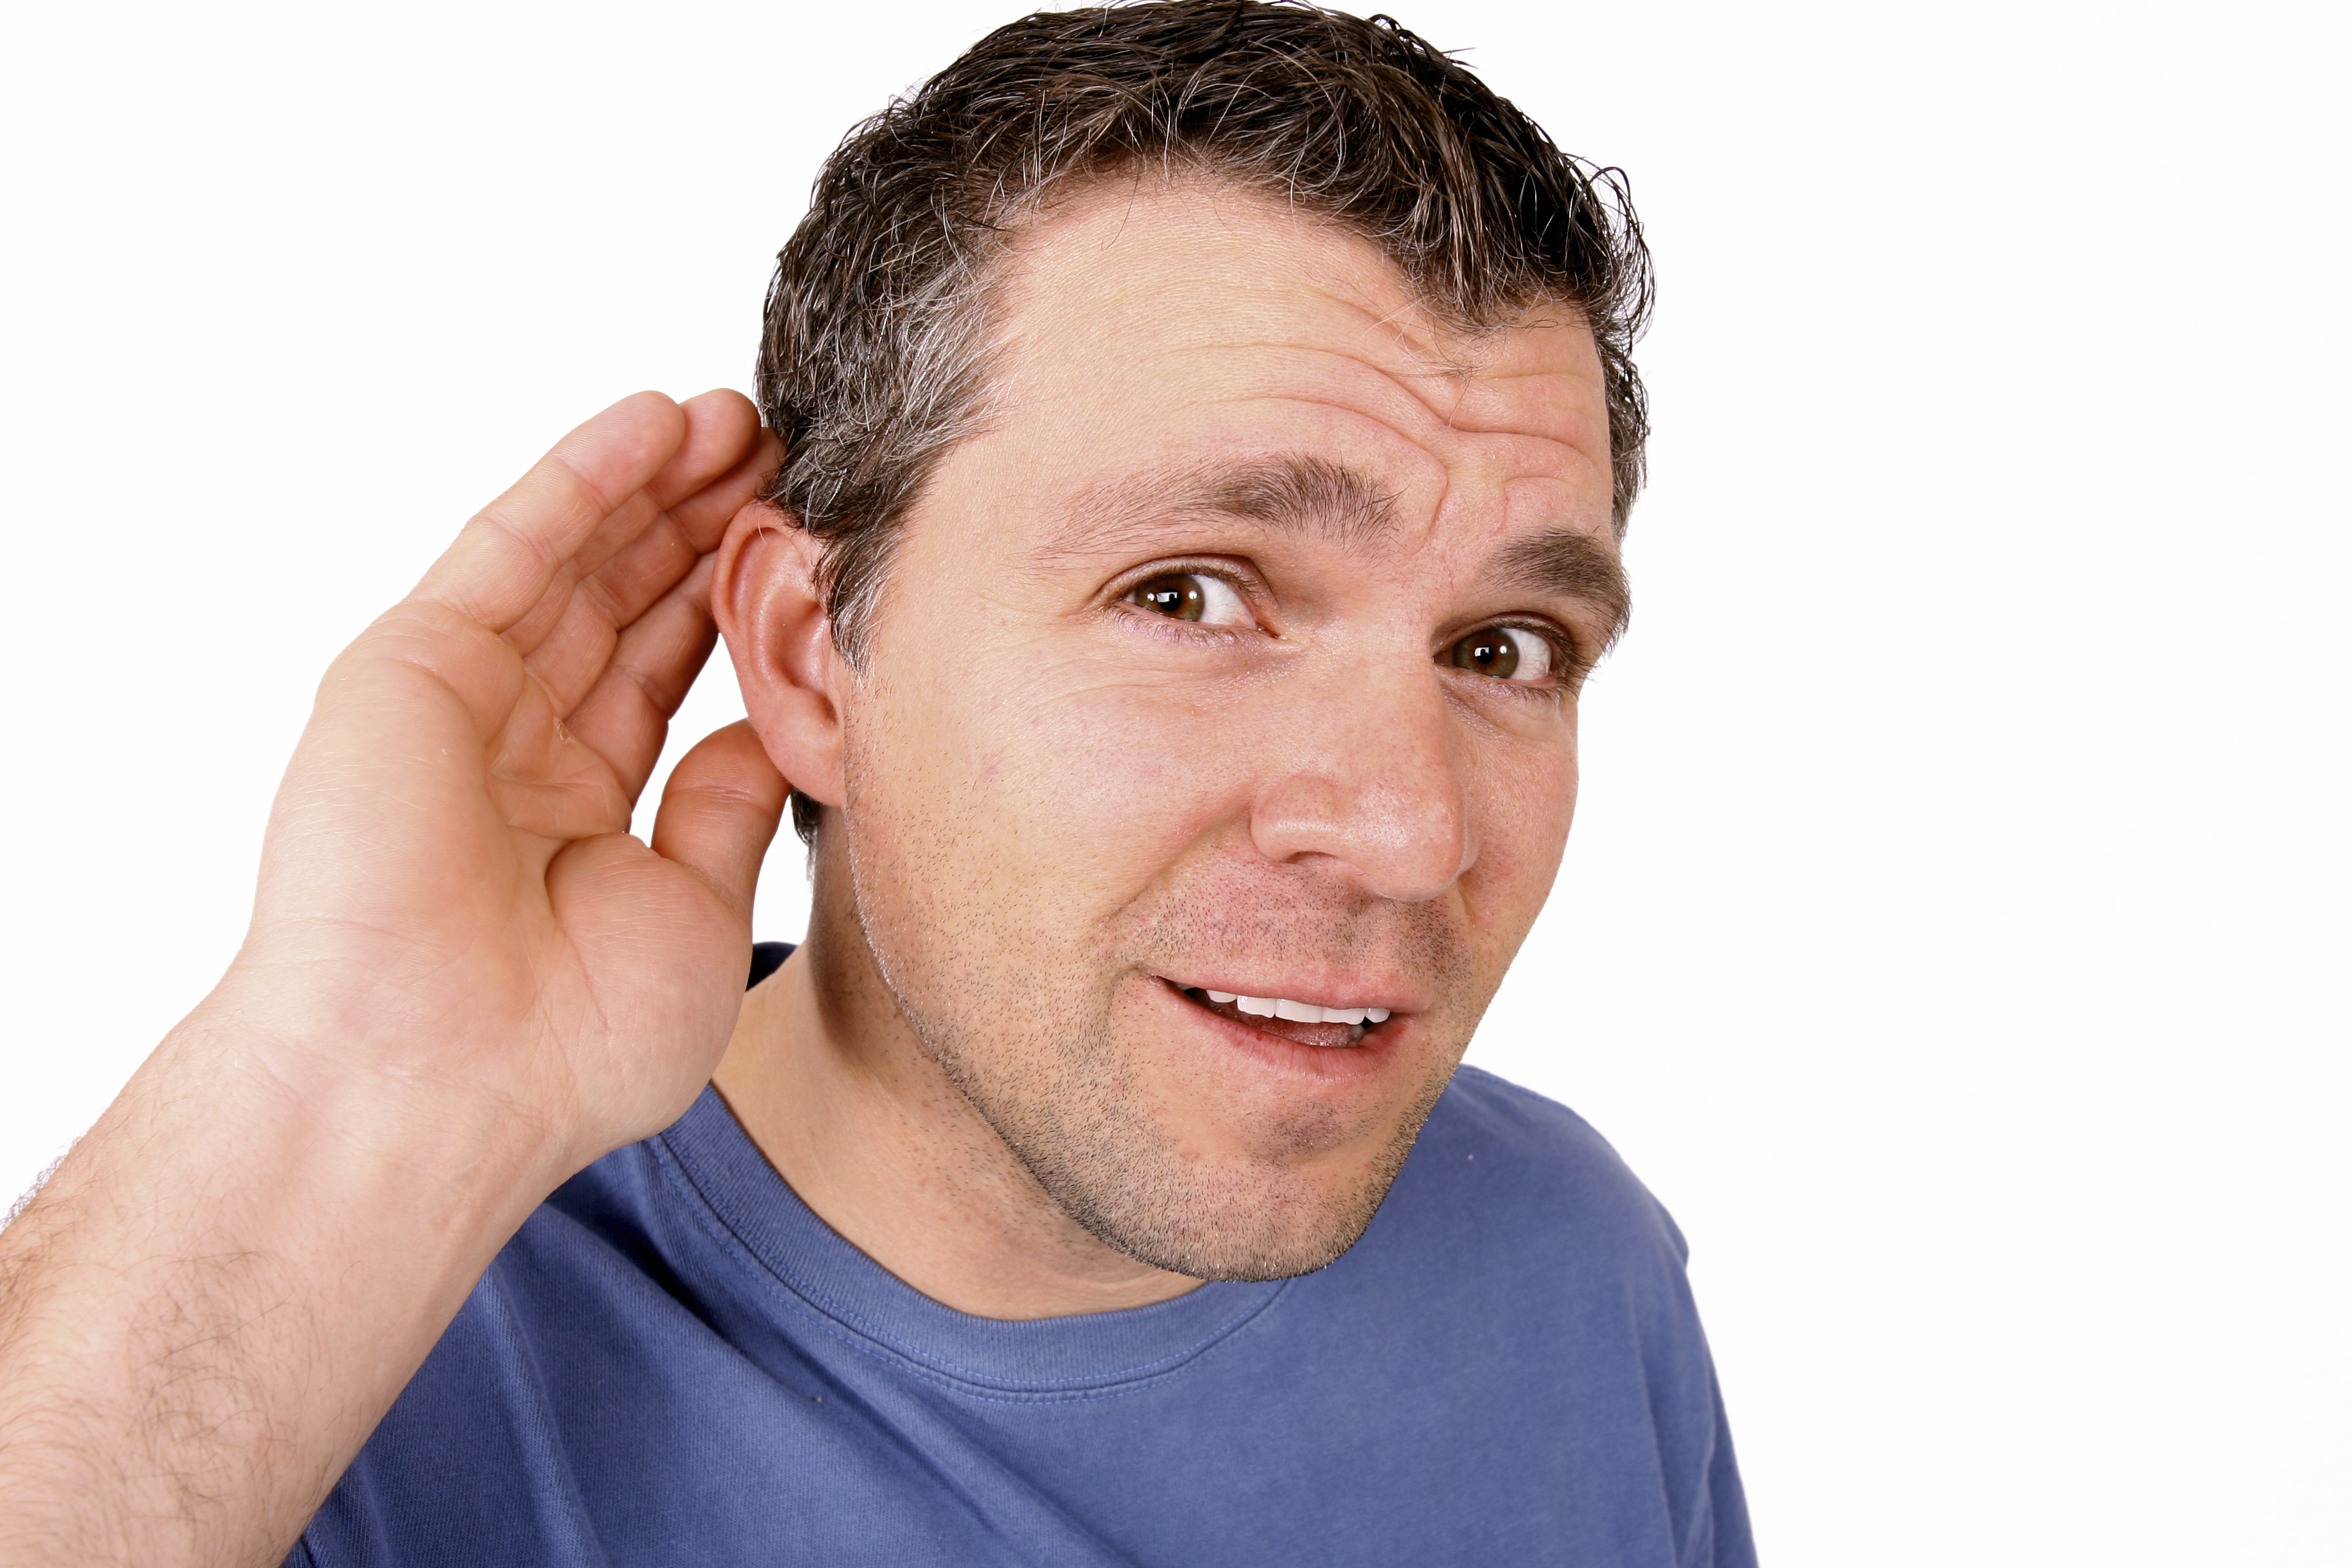 Preventing Hearing Loss - Hearing Safety Toolbox